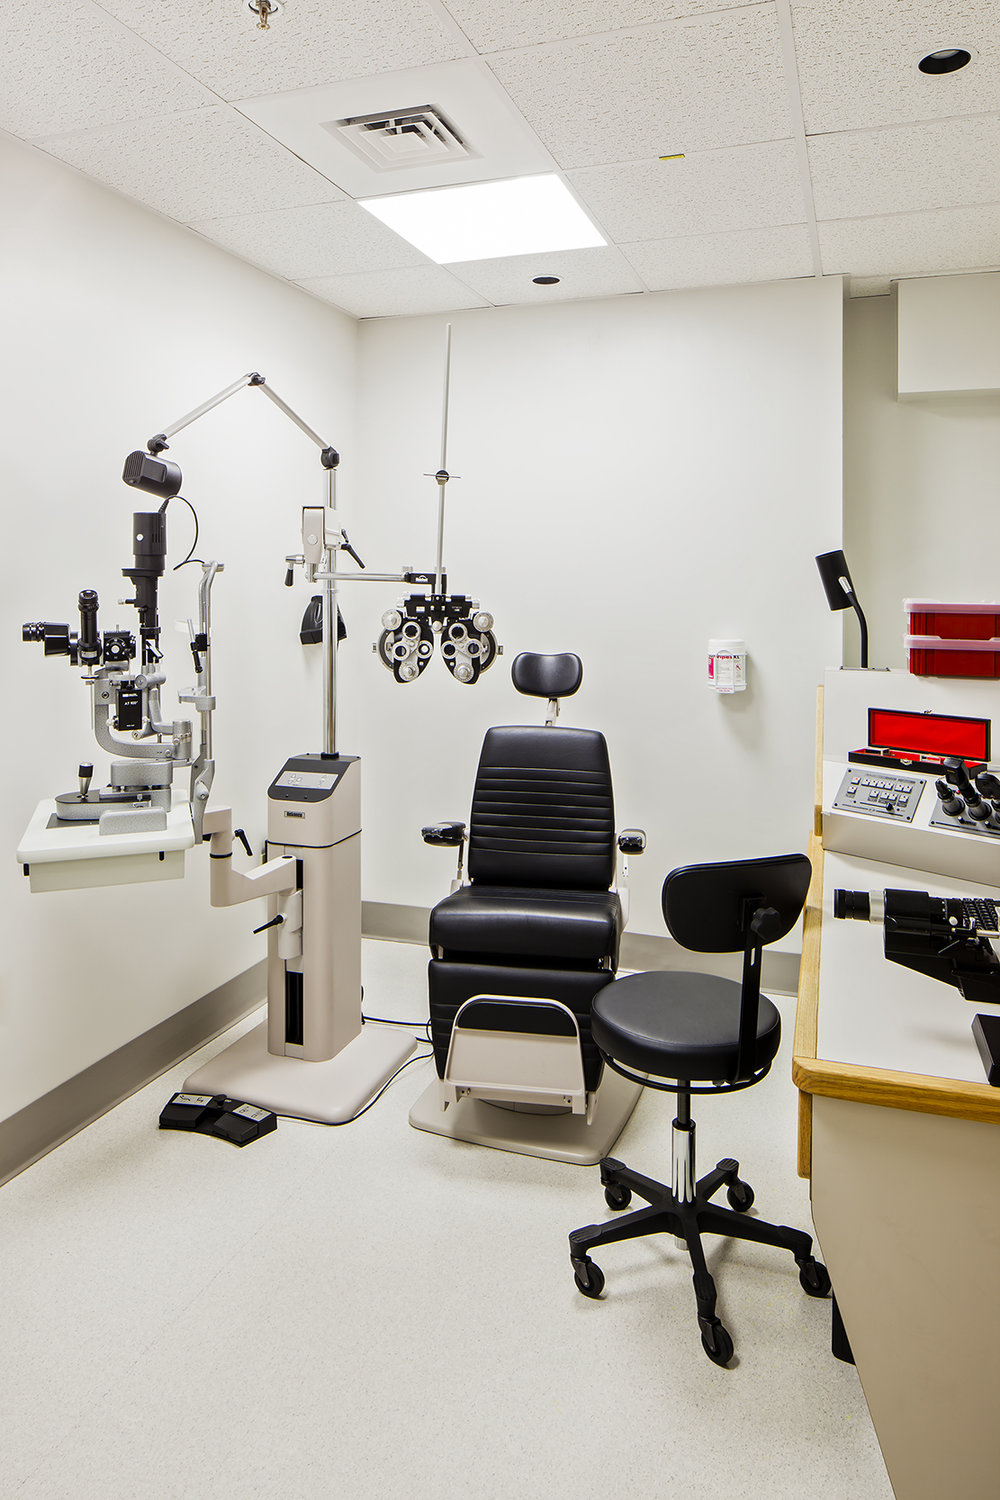 Ophthalmology exam room